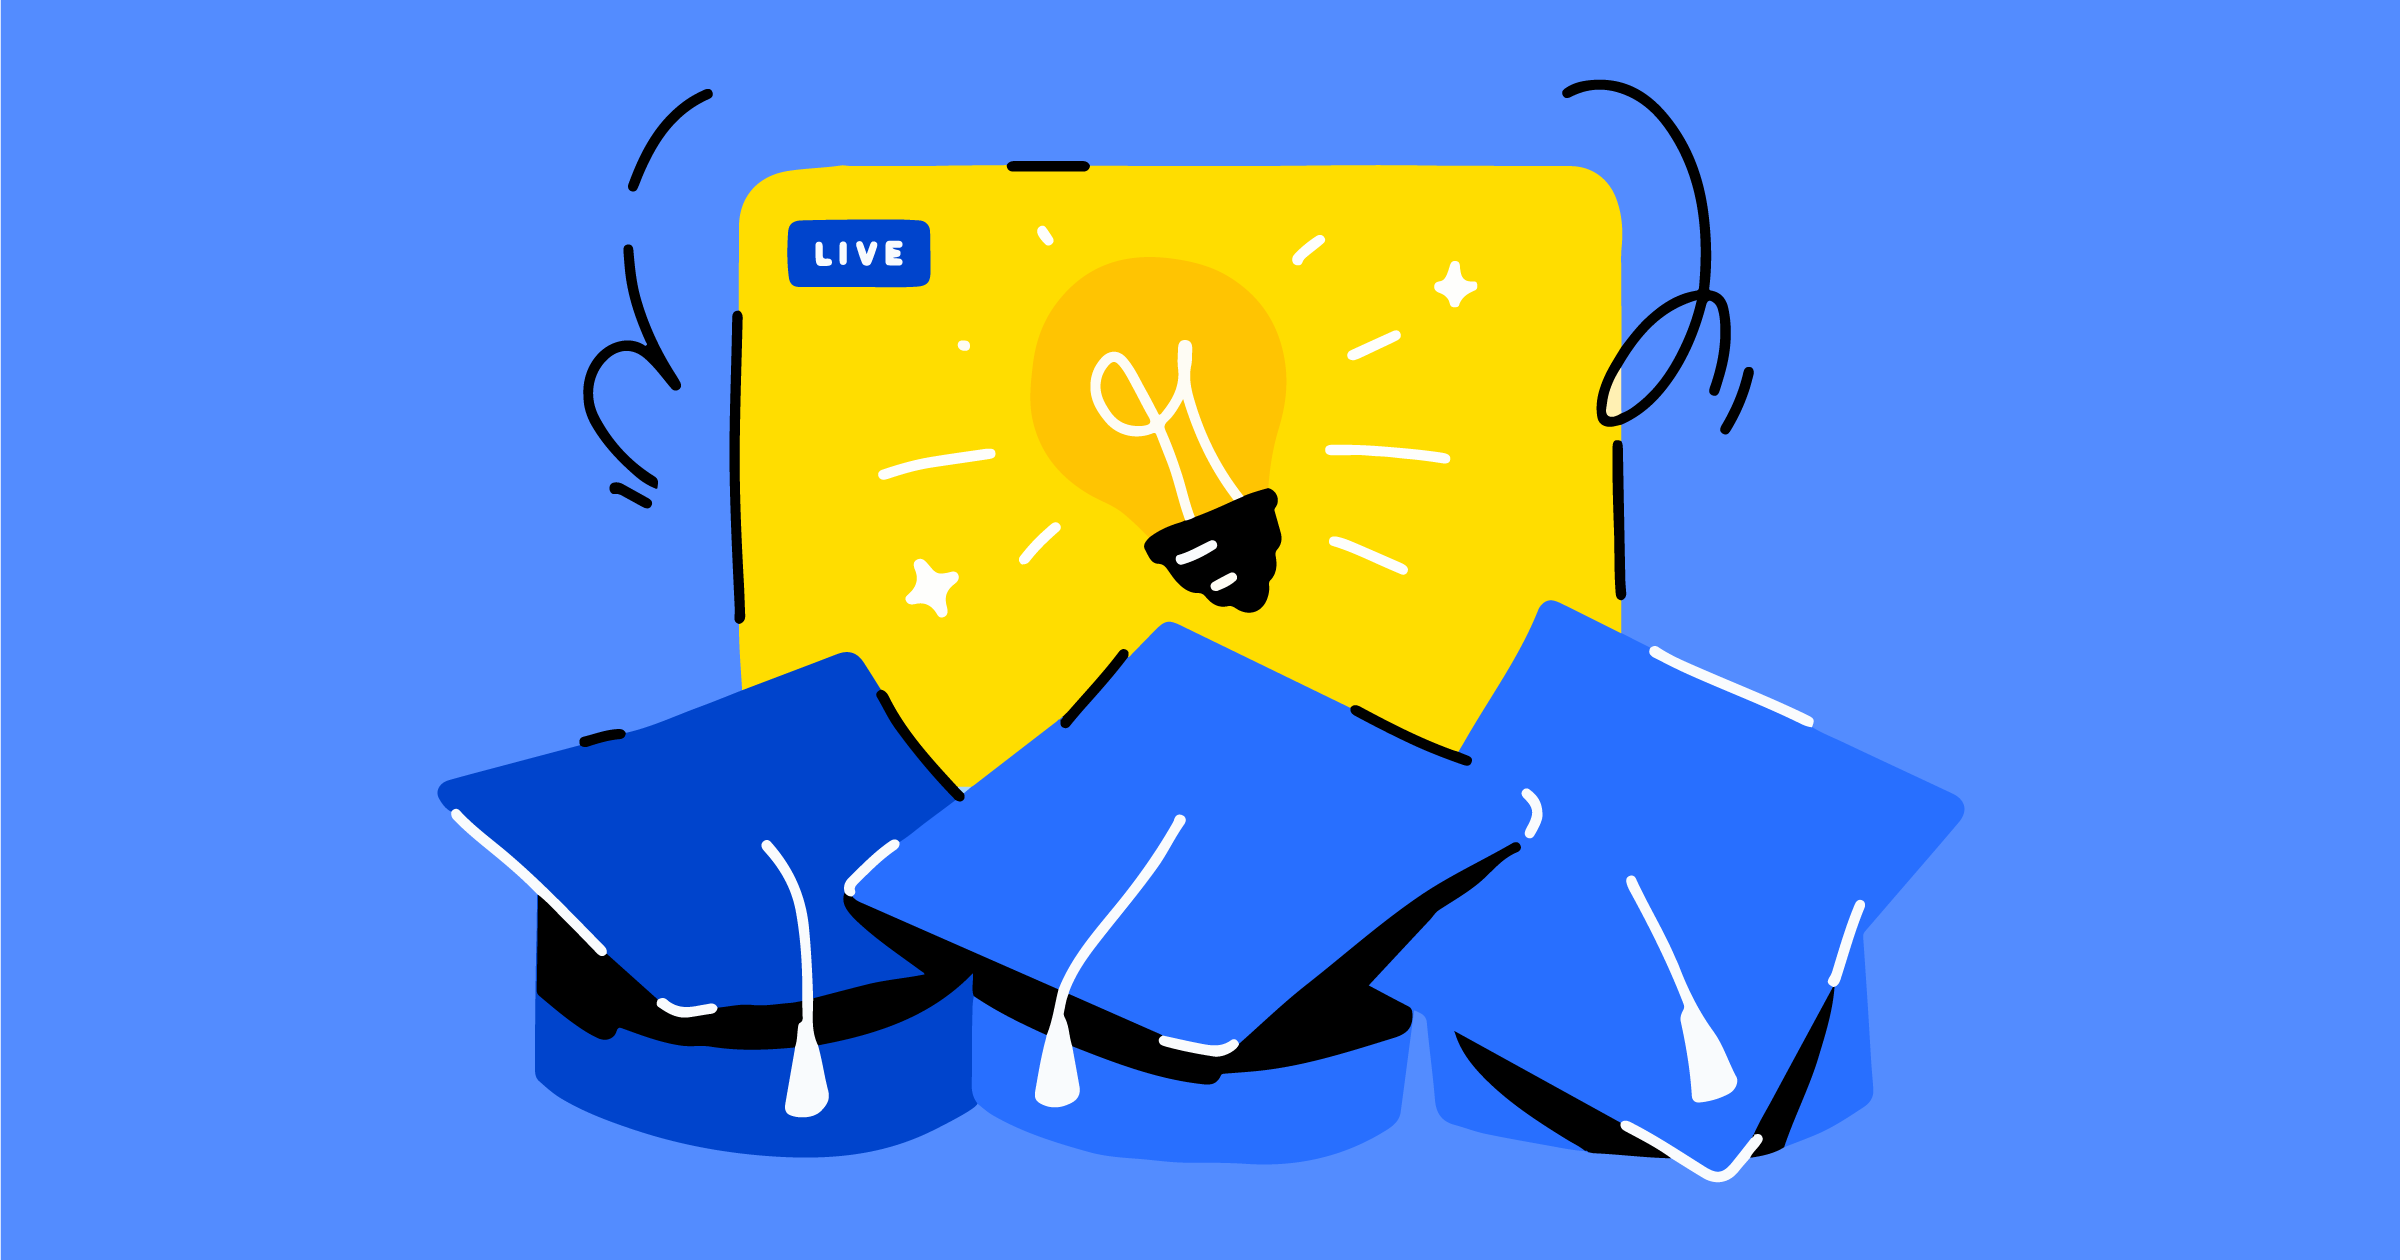 Live streaming for education